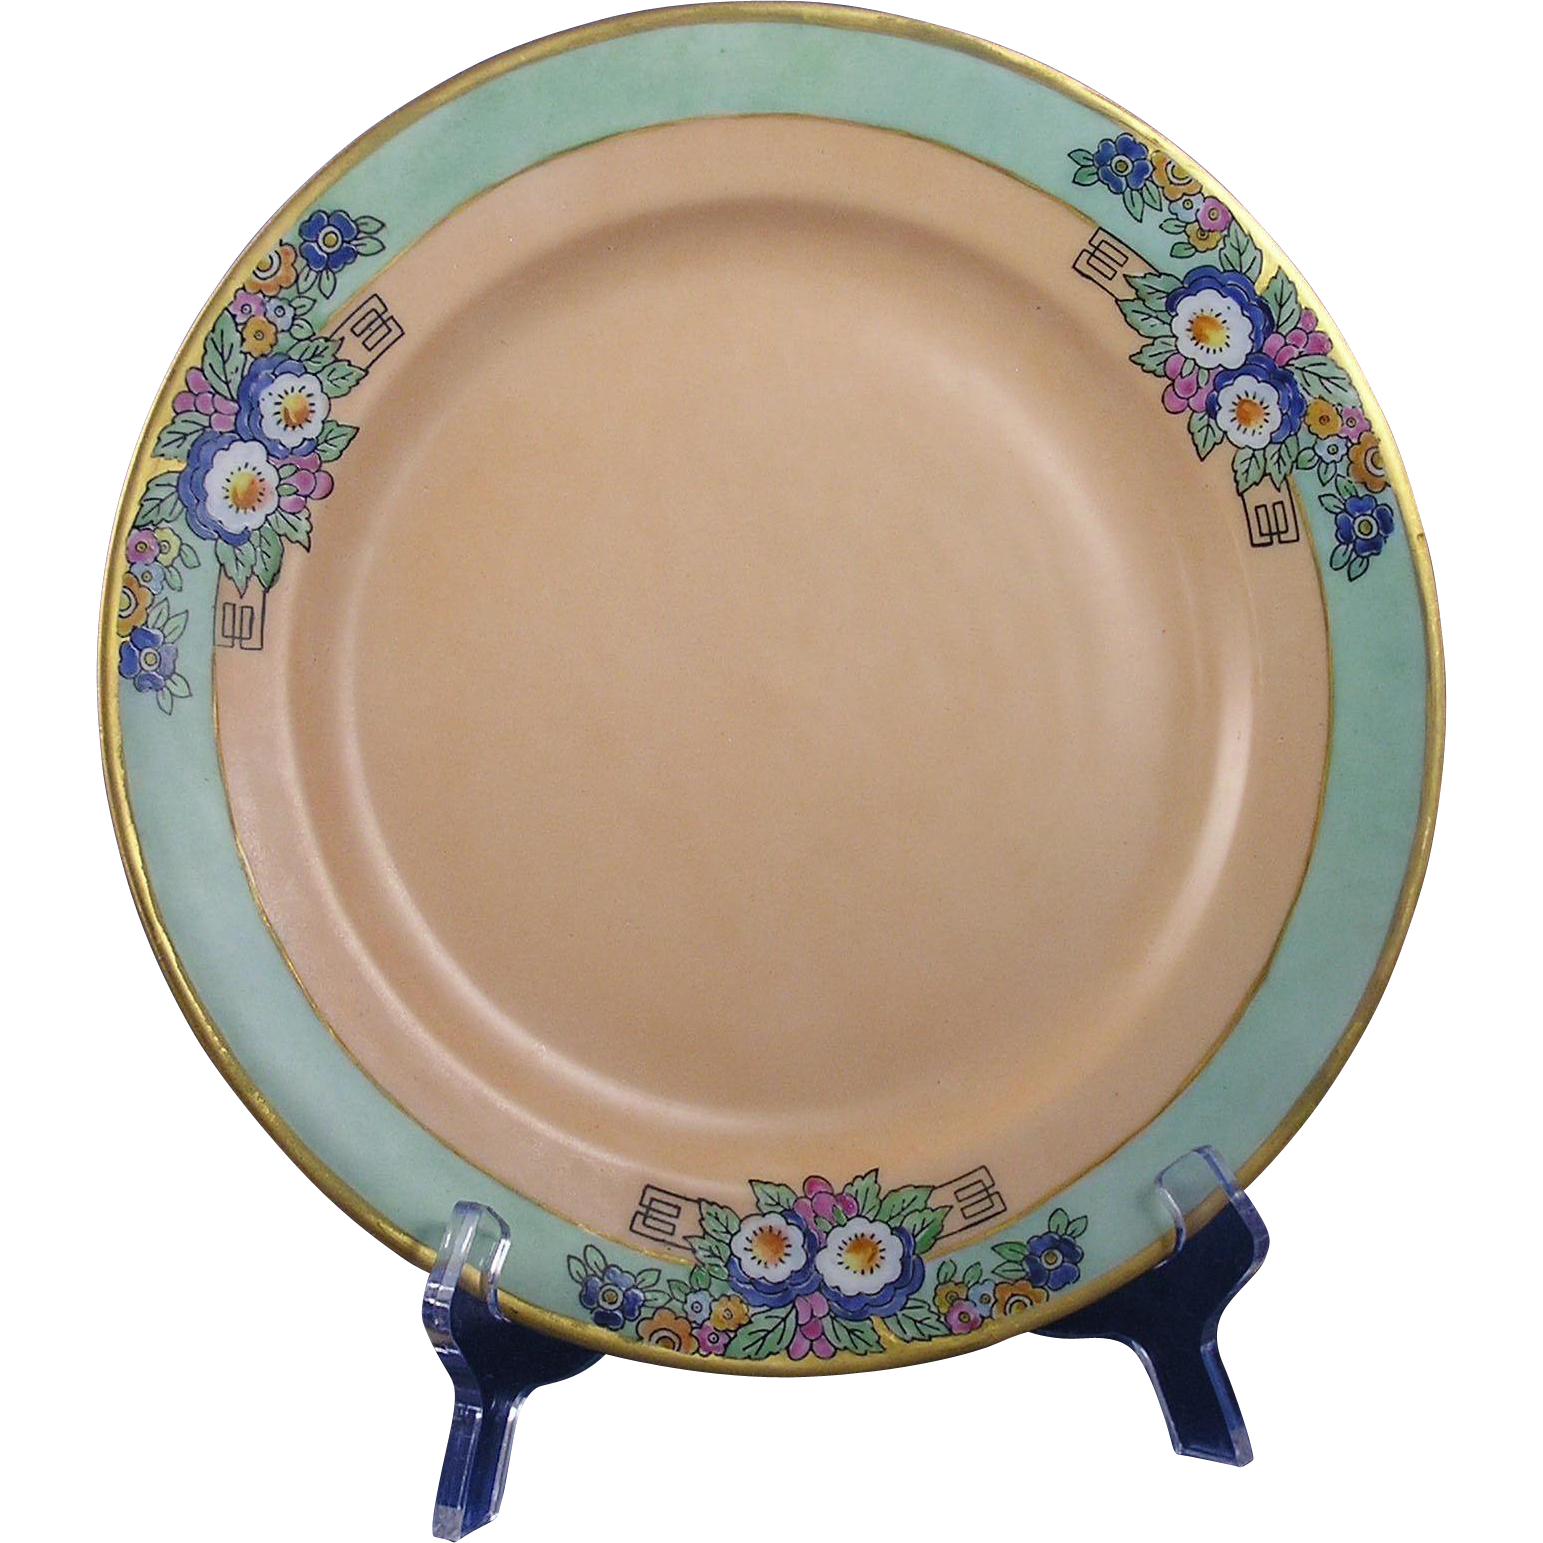 Haviland Limoges Arts & Crafts Enameled Floral Motif Plate (c.1894-1931)